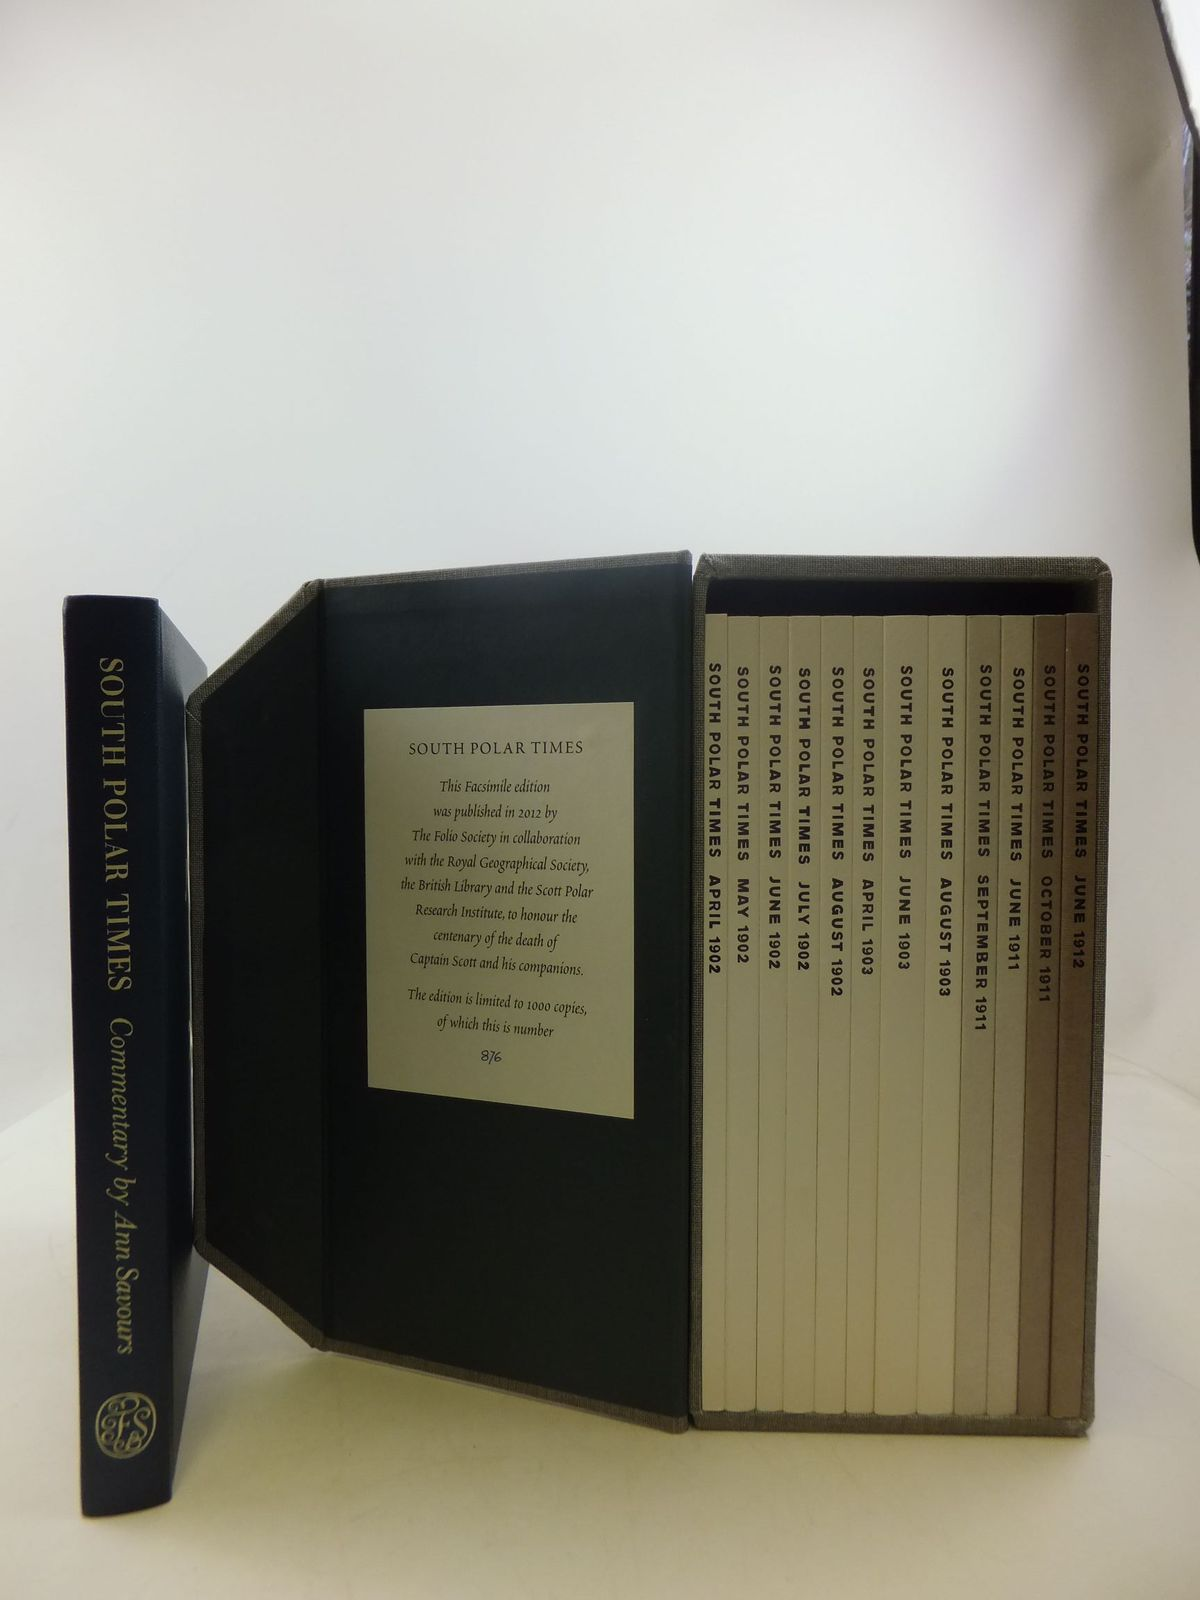 Photo of SOUTH POLAR TIMES (FACSIMILE EDITION IN 12 VOLUMES WITH COMMENTARY)